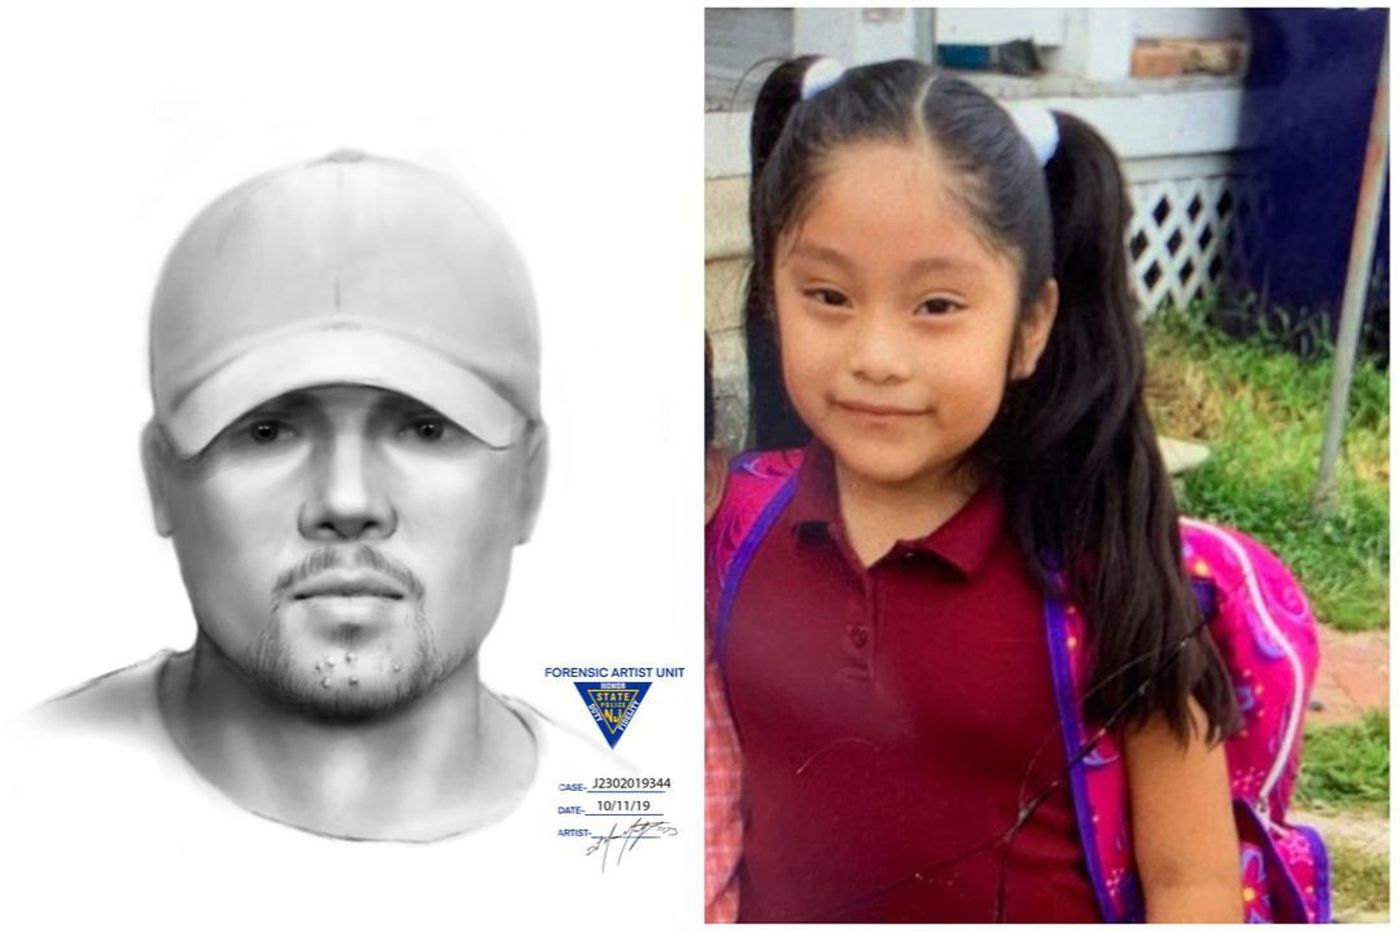 A year later, authorities are still looking for missing Bridgeton girl Dulce Maria Alavez